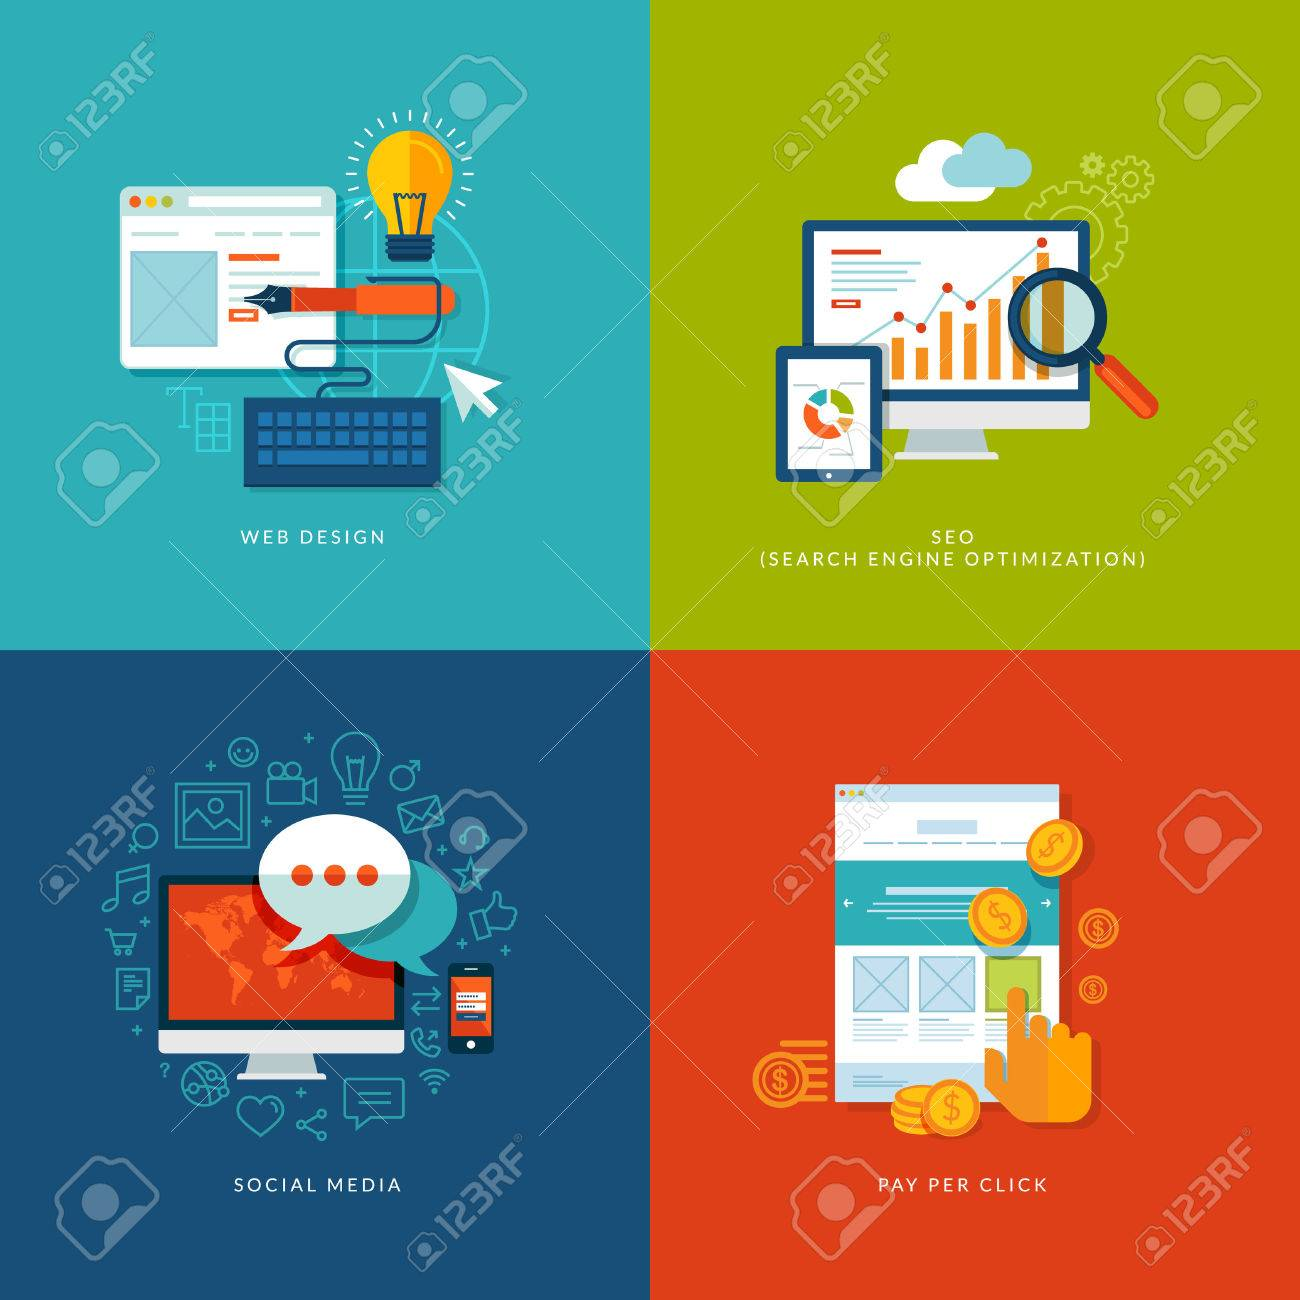 Set of flat design concept icons for web and mobile services and apps  Icons for web design, seo, social media and pay per click internet advertising Stock Vector - 24900102